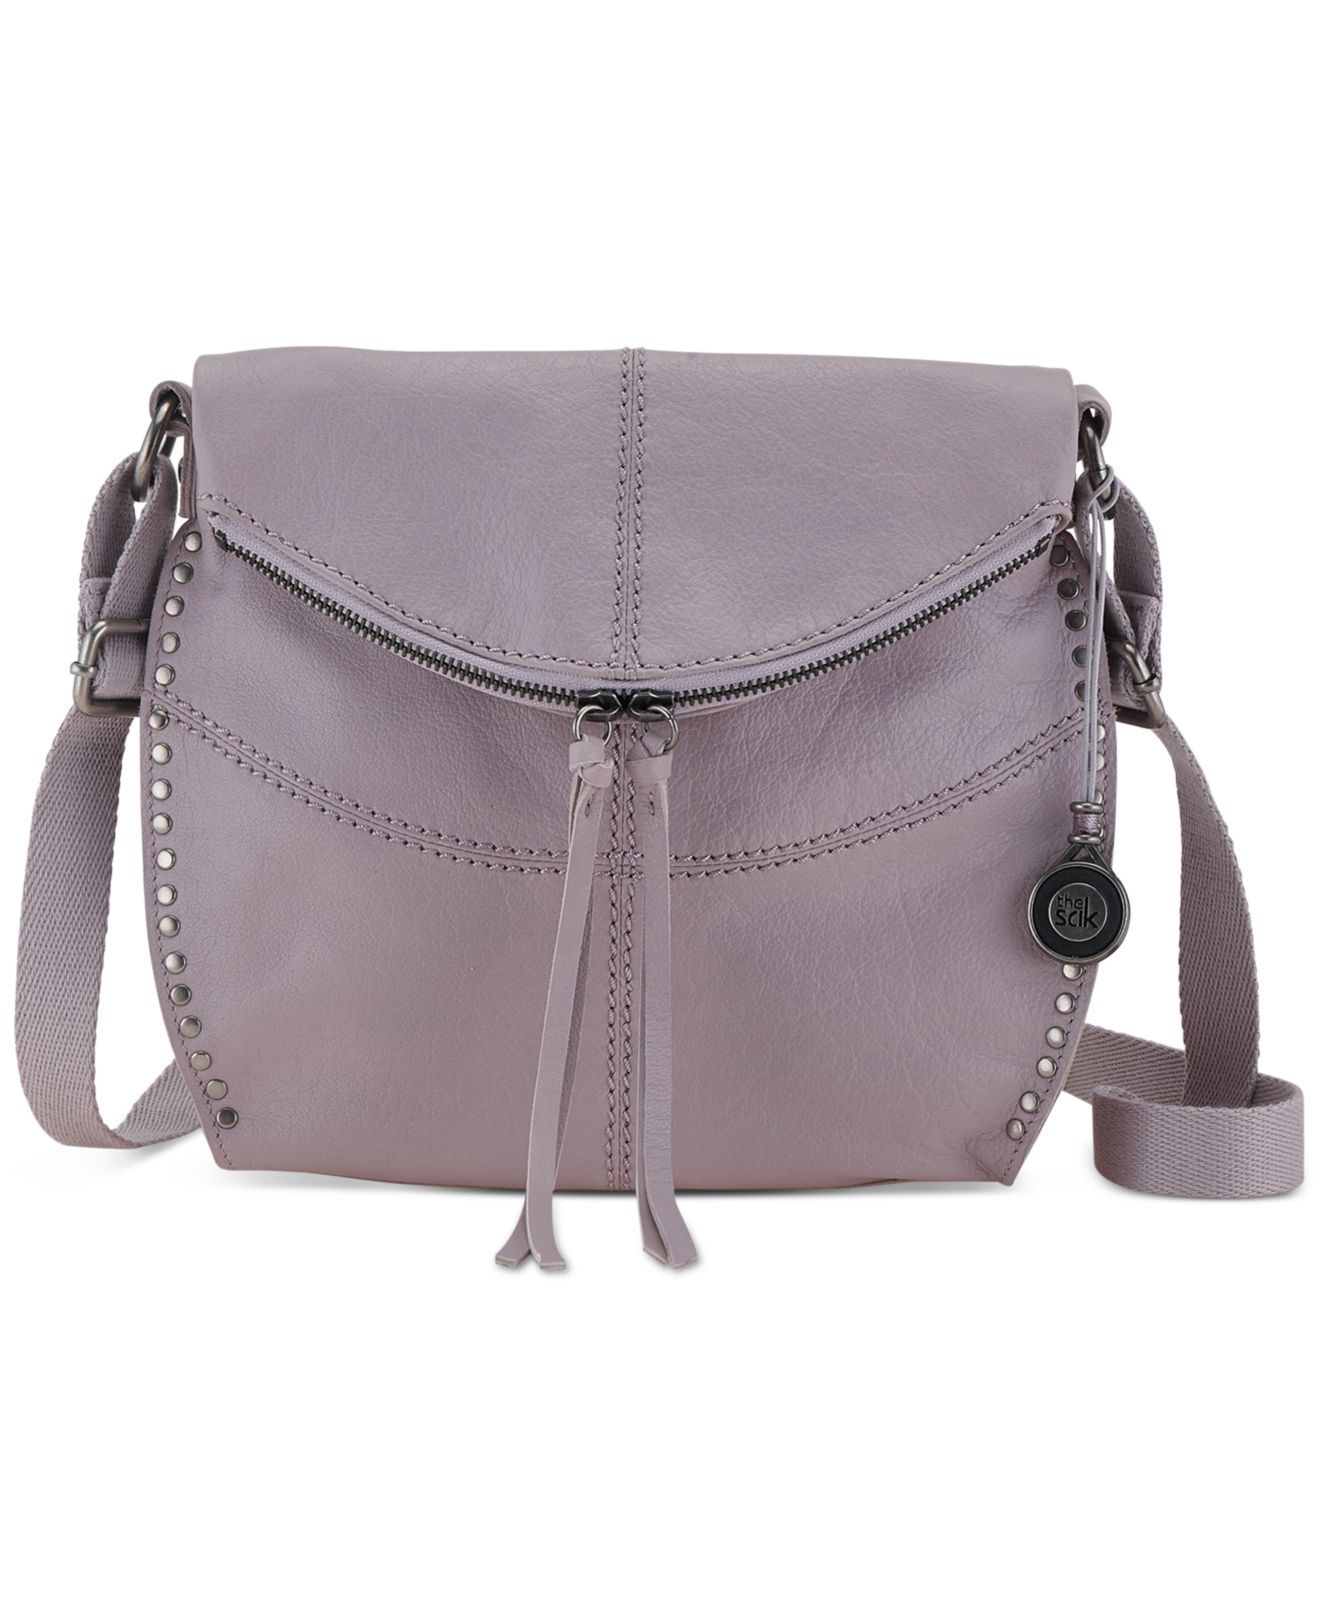 84bc28a6c857 Lyst - The Sak Silverlake Leather Crossbody in Purple